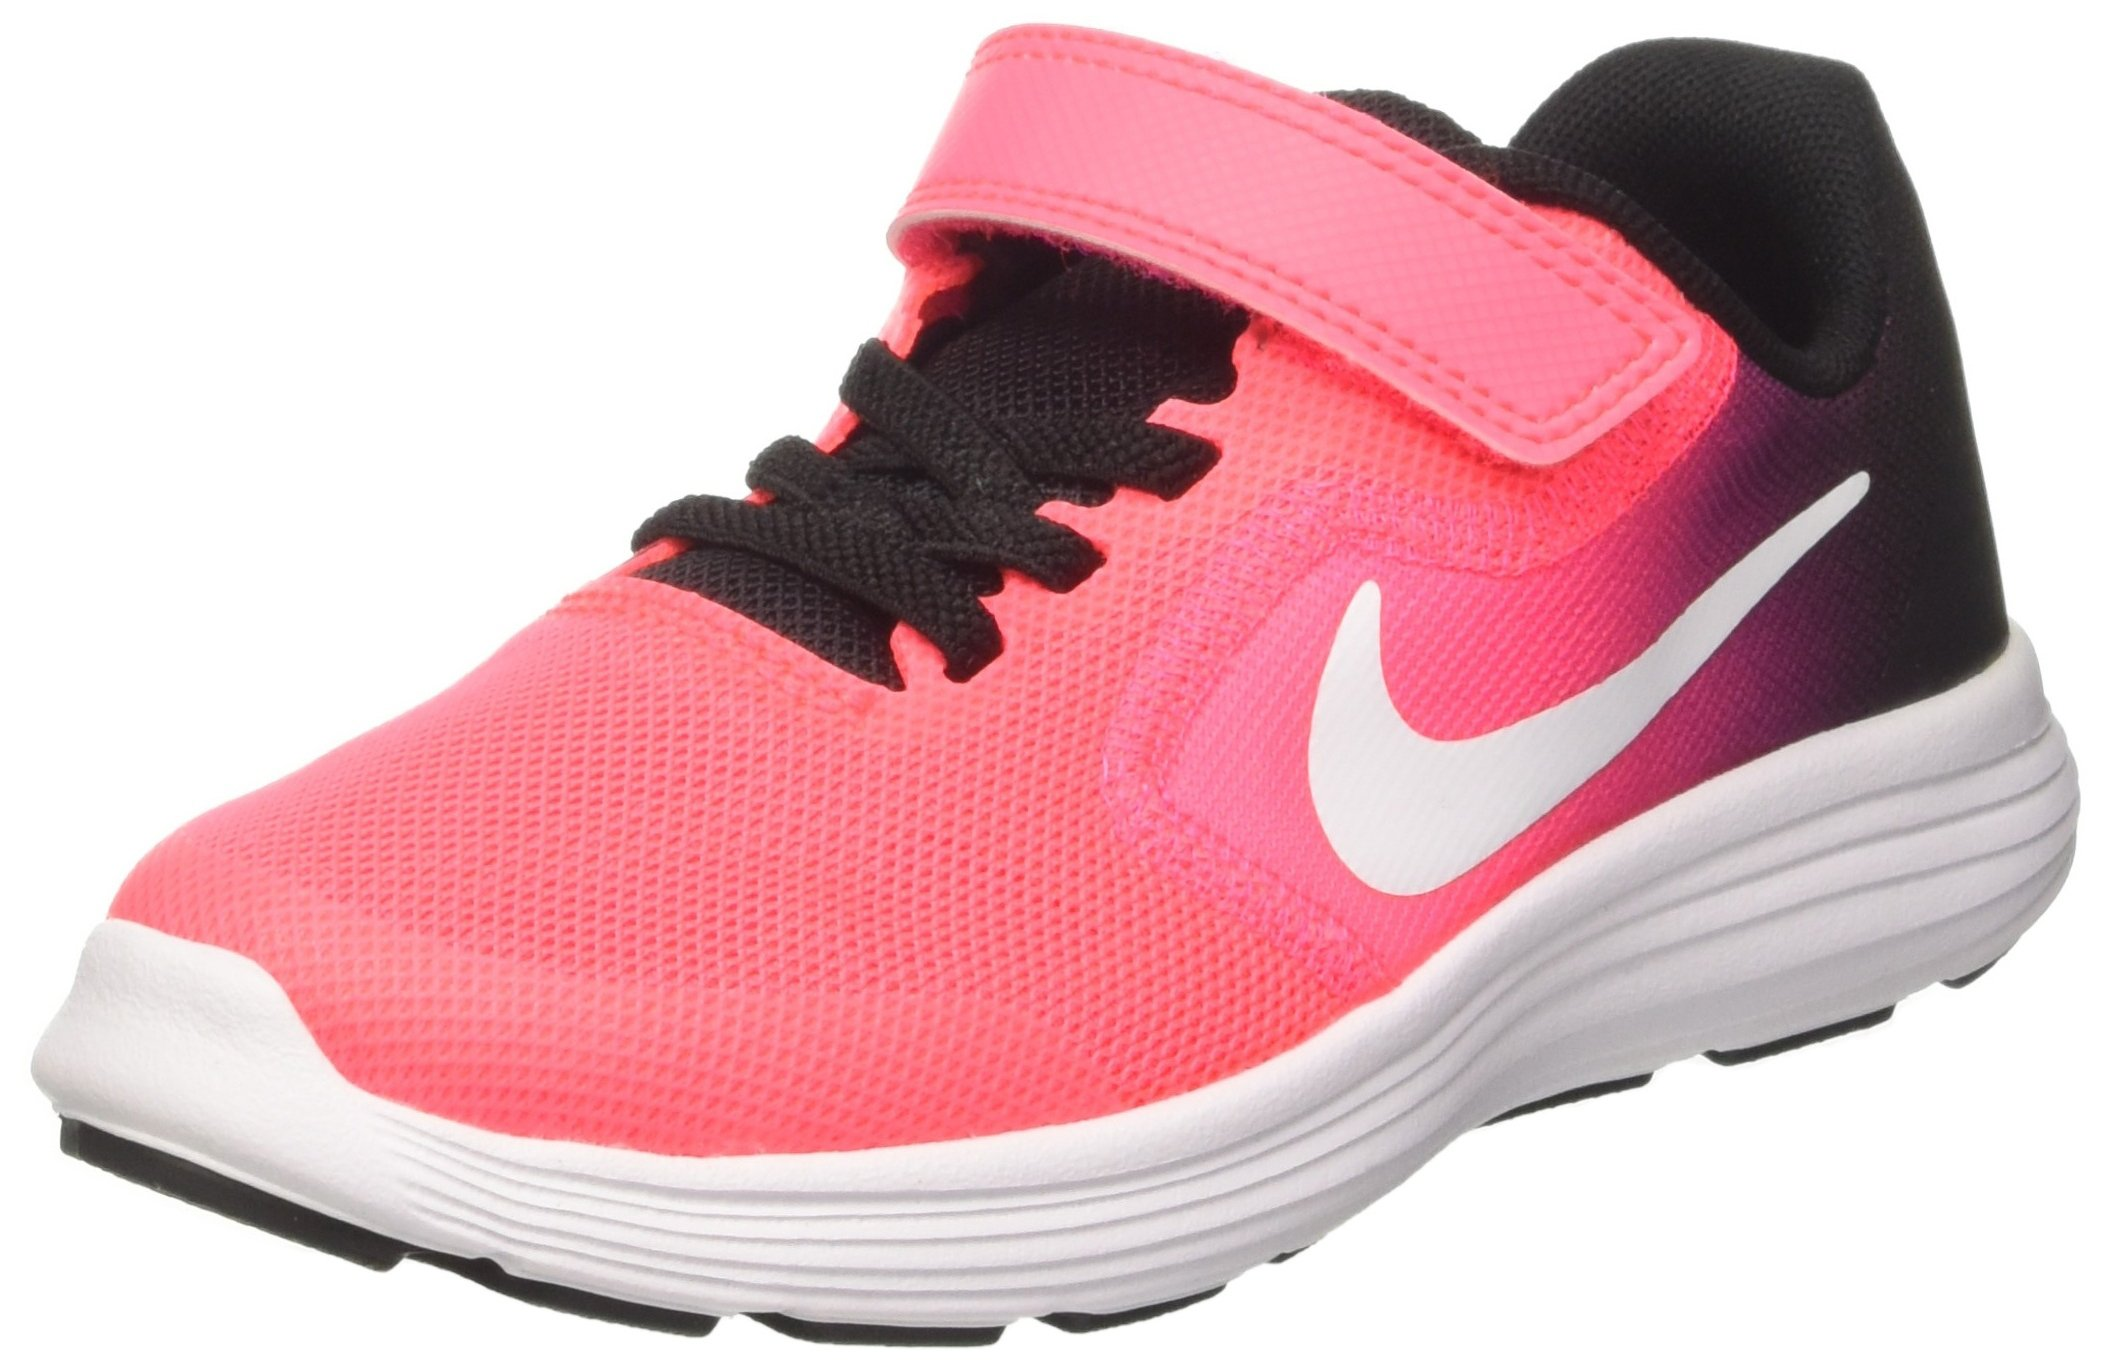 NIKE Kids' Revolution 3 (Psv) Running-Shoes, Black/White/Racer Pink/Black, 1.5 M US Little Kid